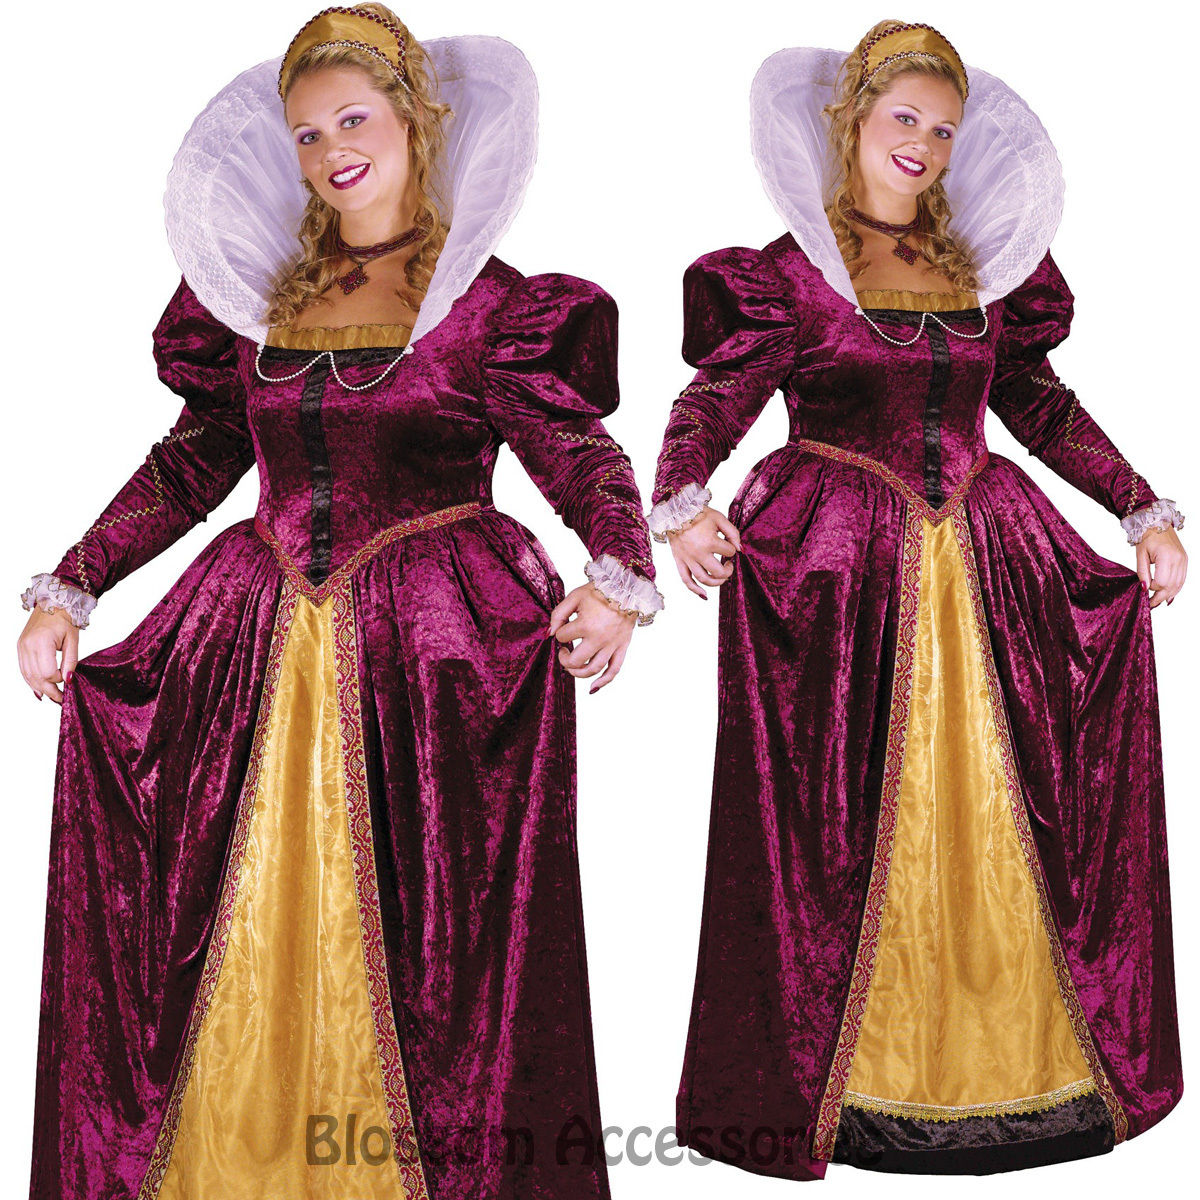 Queen_Elizabeth_Costume_XL